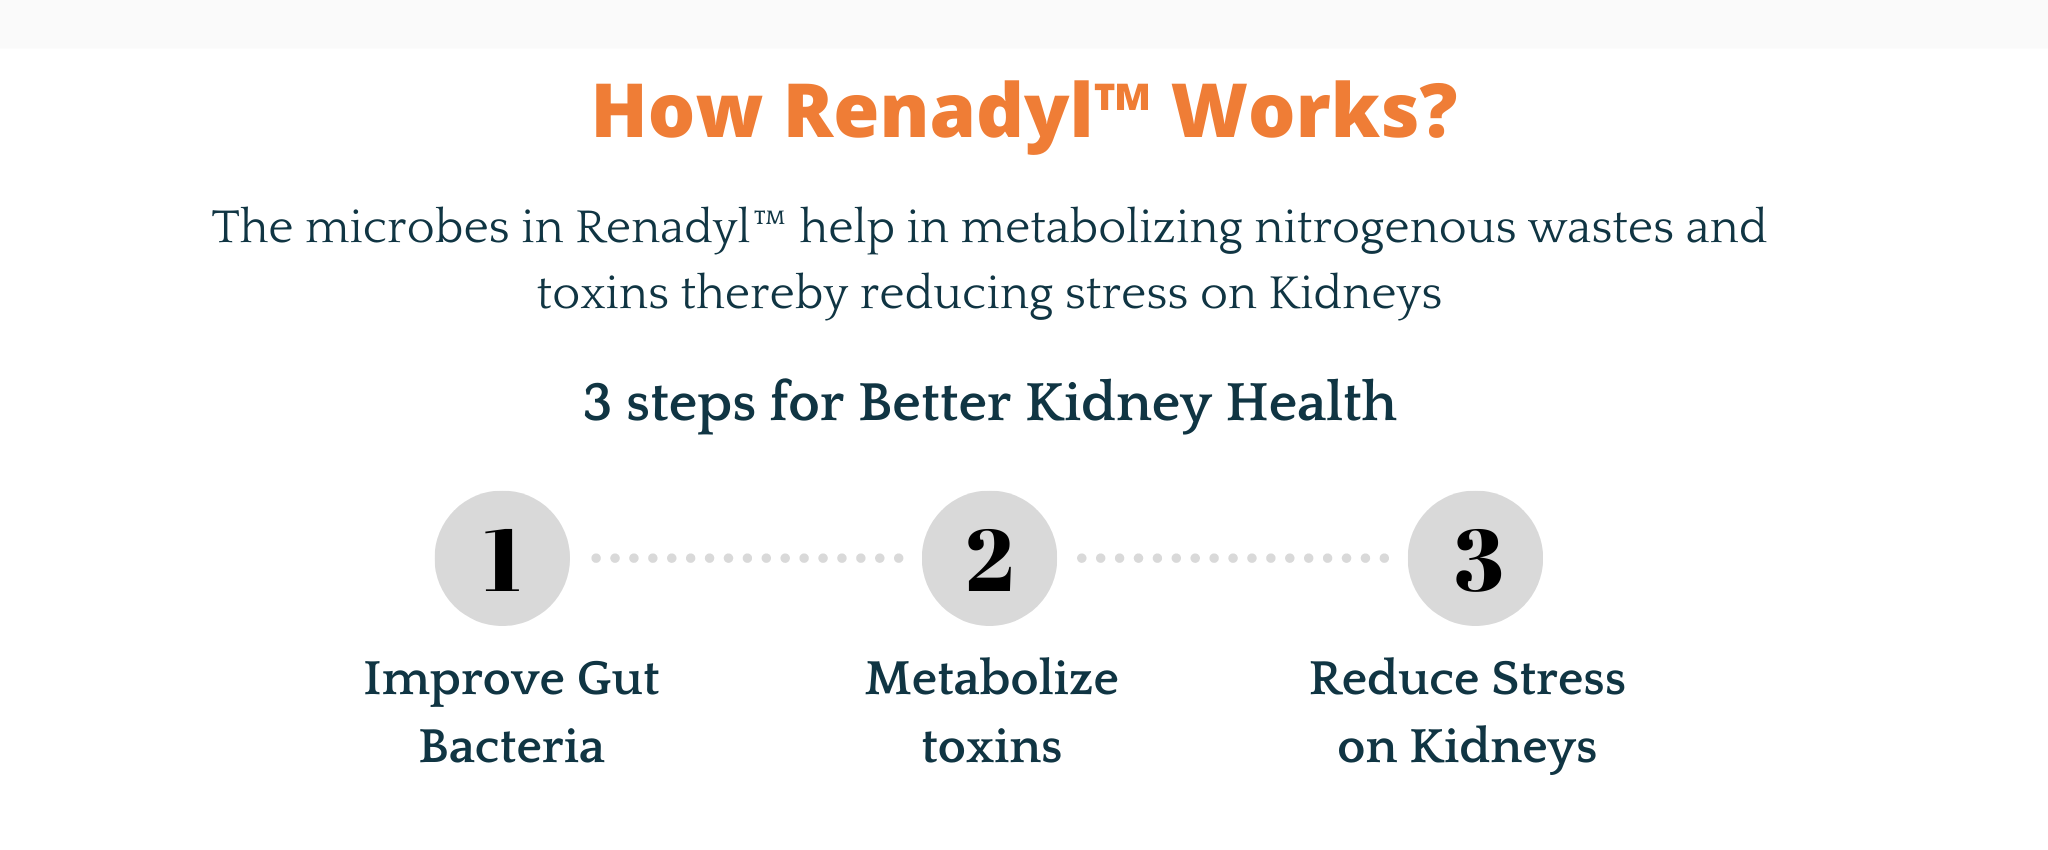 renaydl-kidney-health-3-steps.png